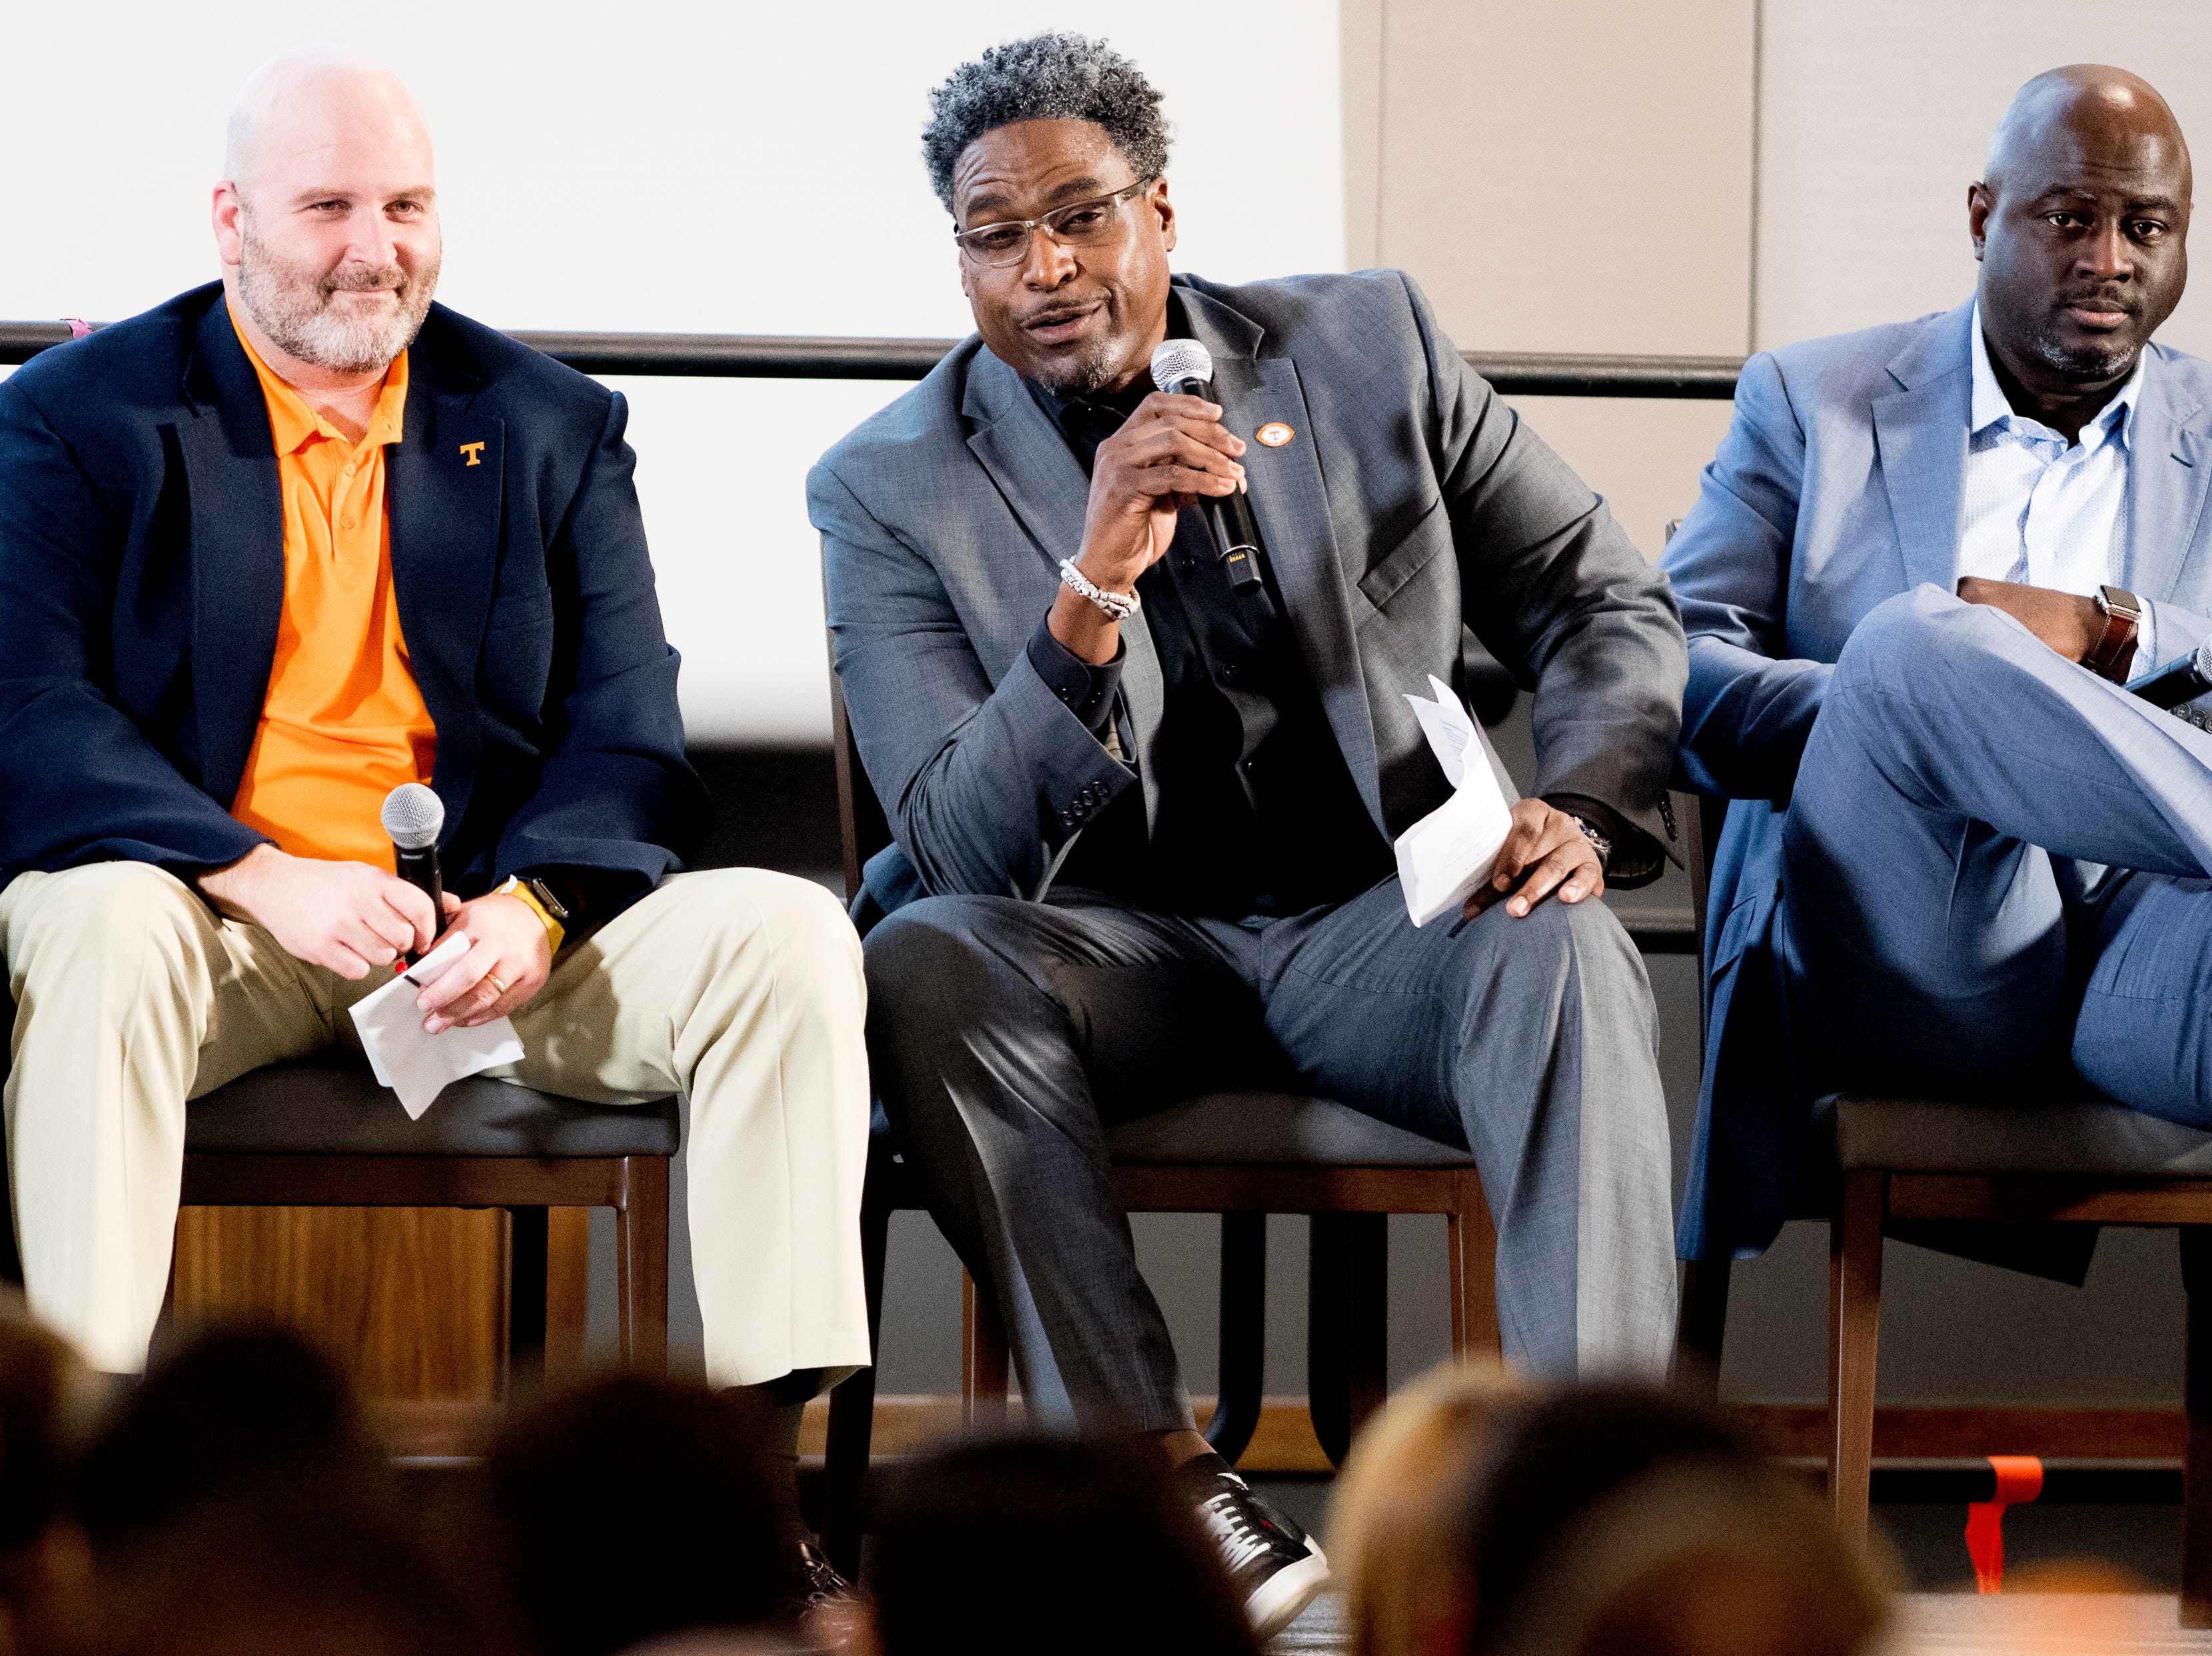 Defensive line coach Tracy Rocker speaks beside offensive line coach Will Friend, left, and Co-Defensive Coordinator / Outside Linebackers Chris Rumph, right, during a Tennessee signing day celebration at the UTK Student Union in Knoxville, Tennessee on Wednesday, February 6, 2019.